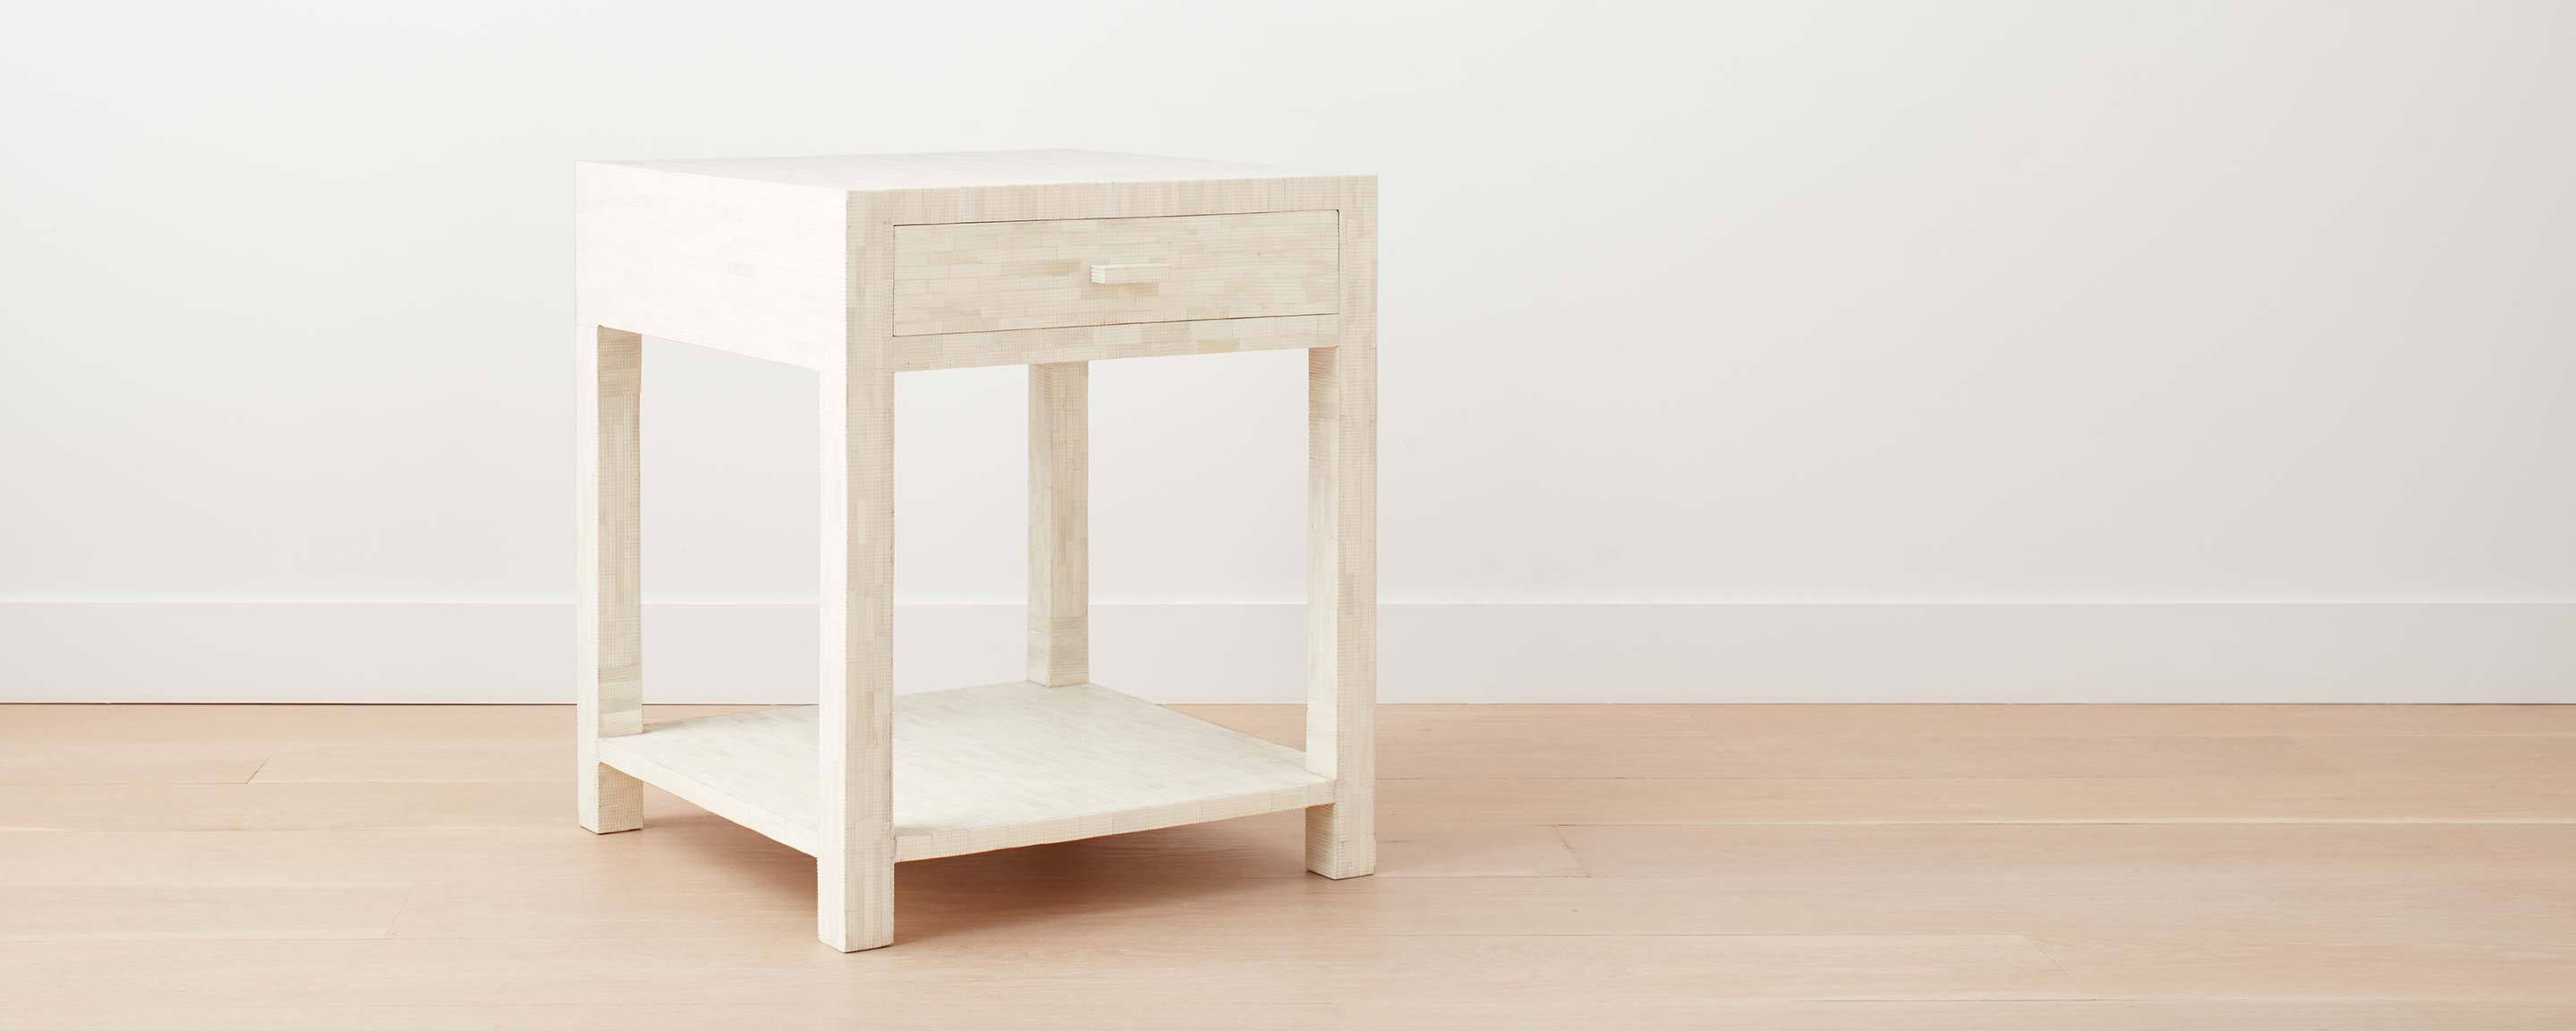 etched bone square nightstand (floor model)